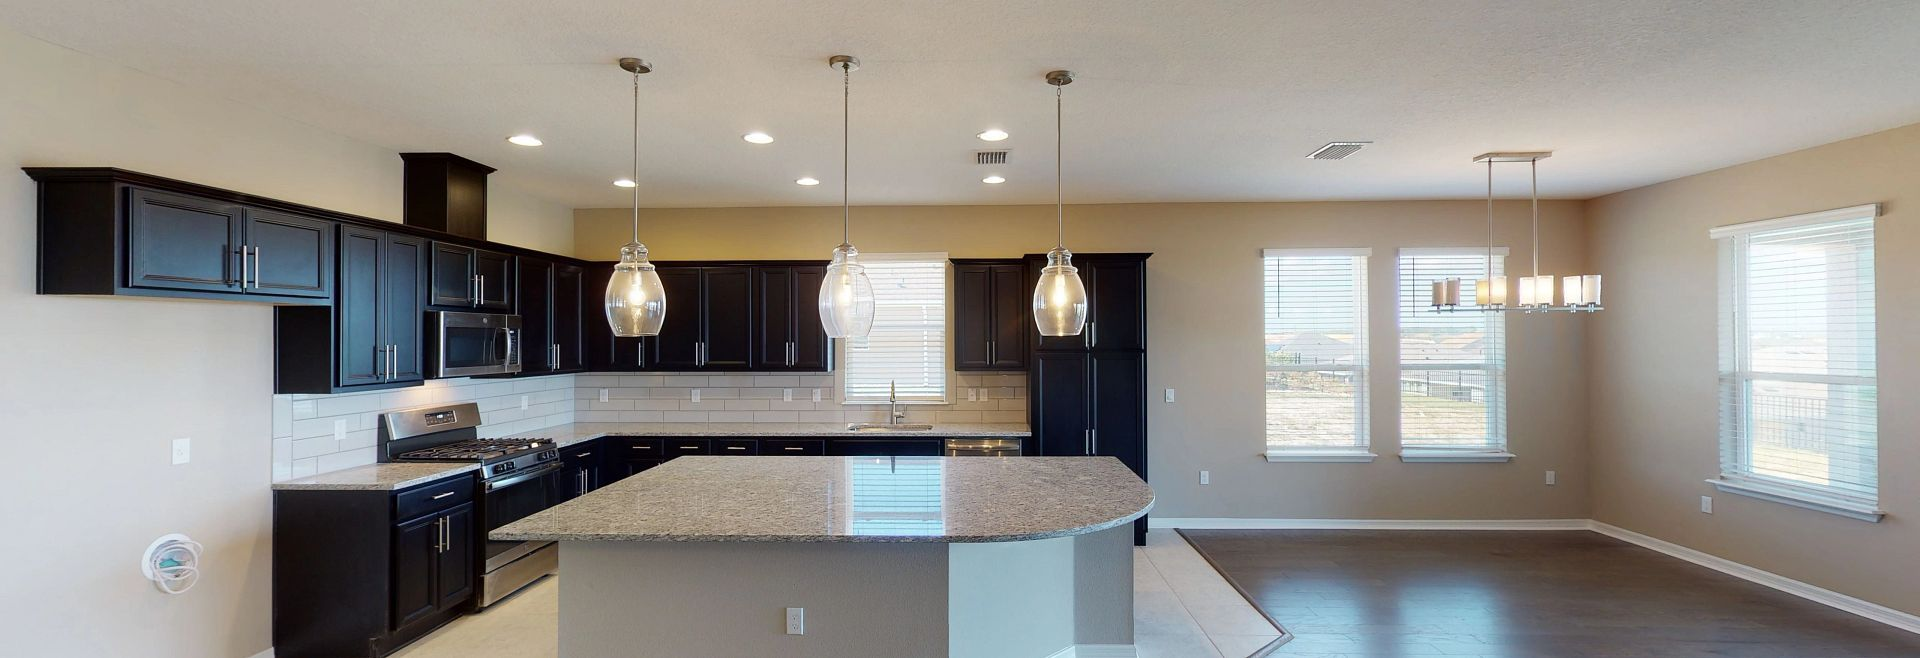 Kitchen featured in the Declare By Shea Homes - Trilogy in Orlando, FL